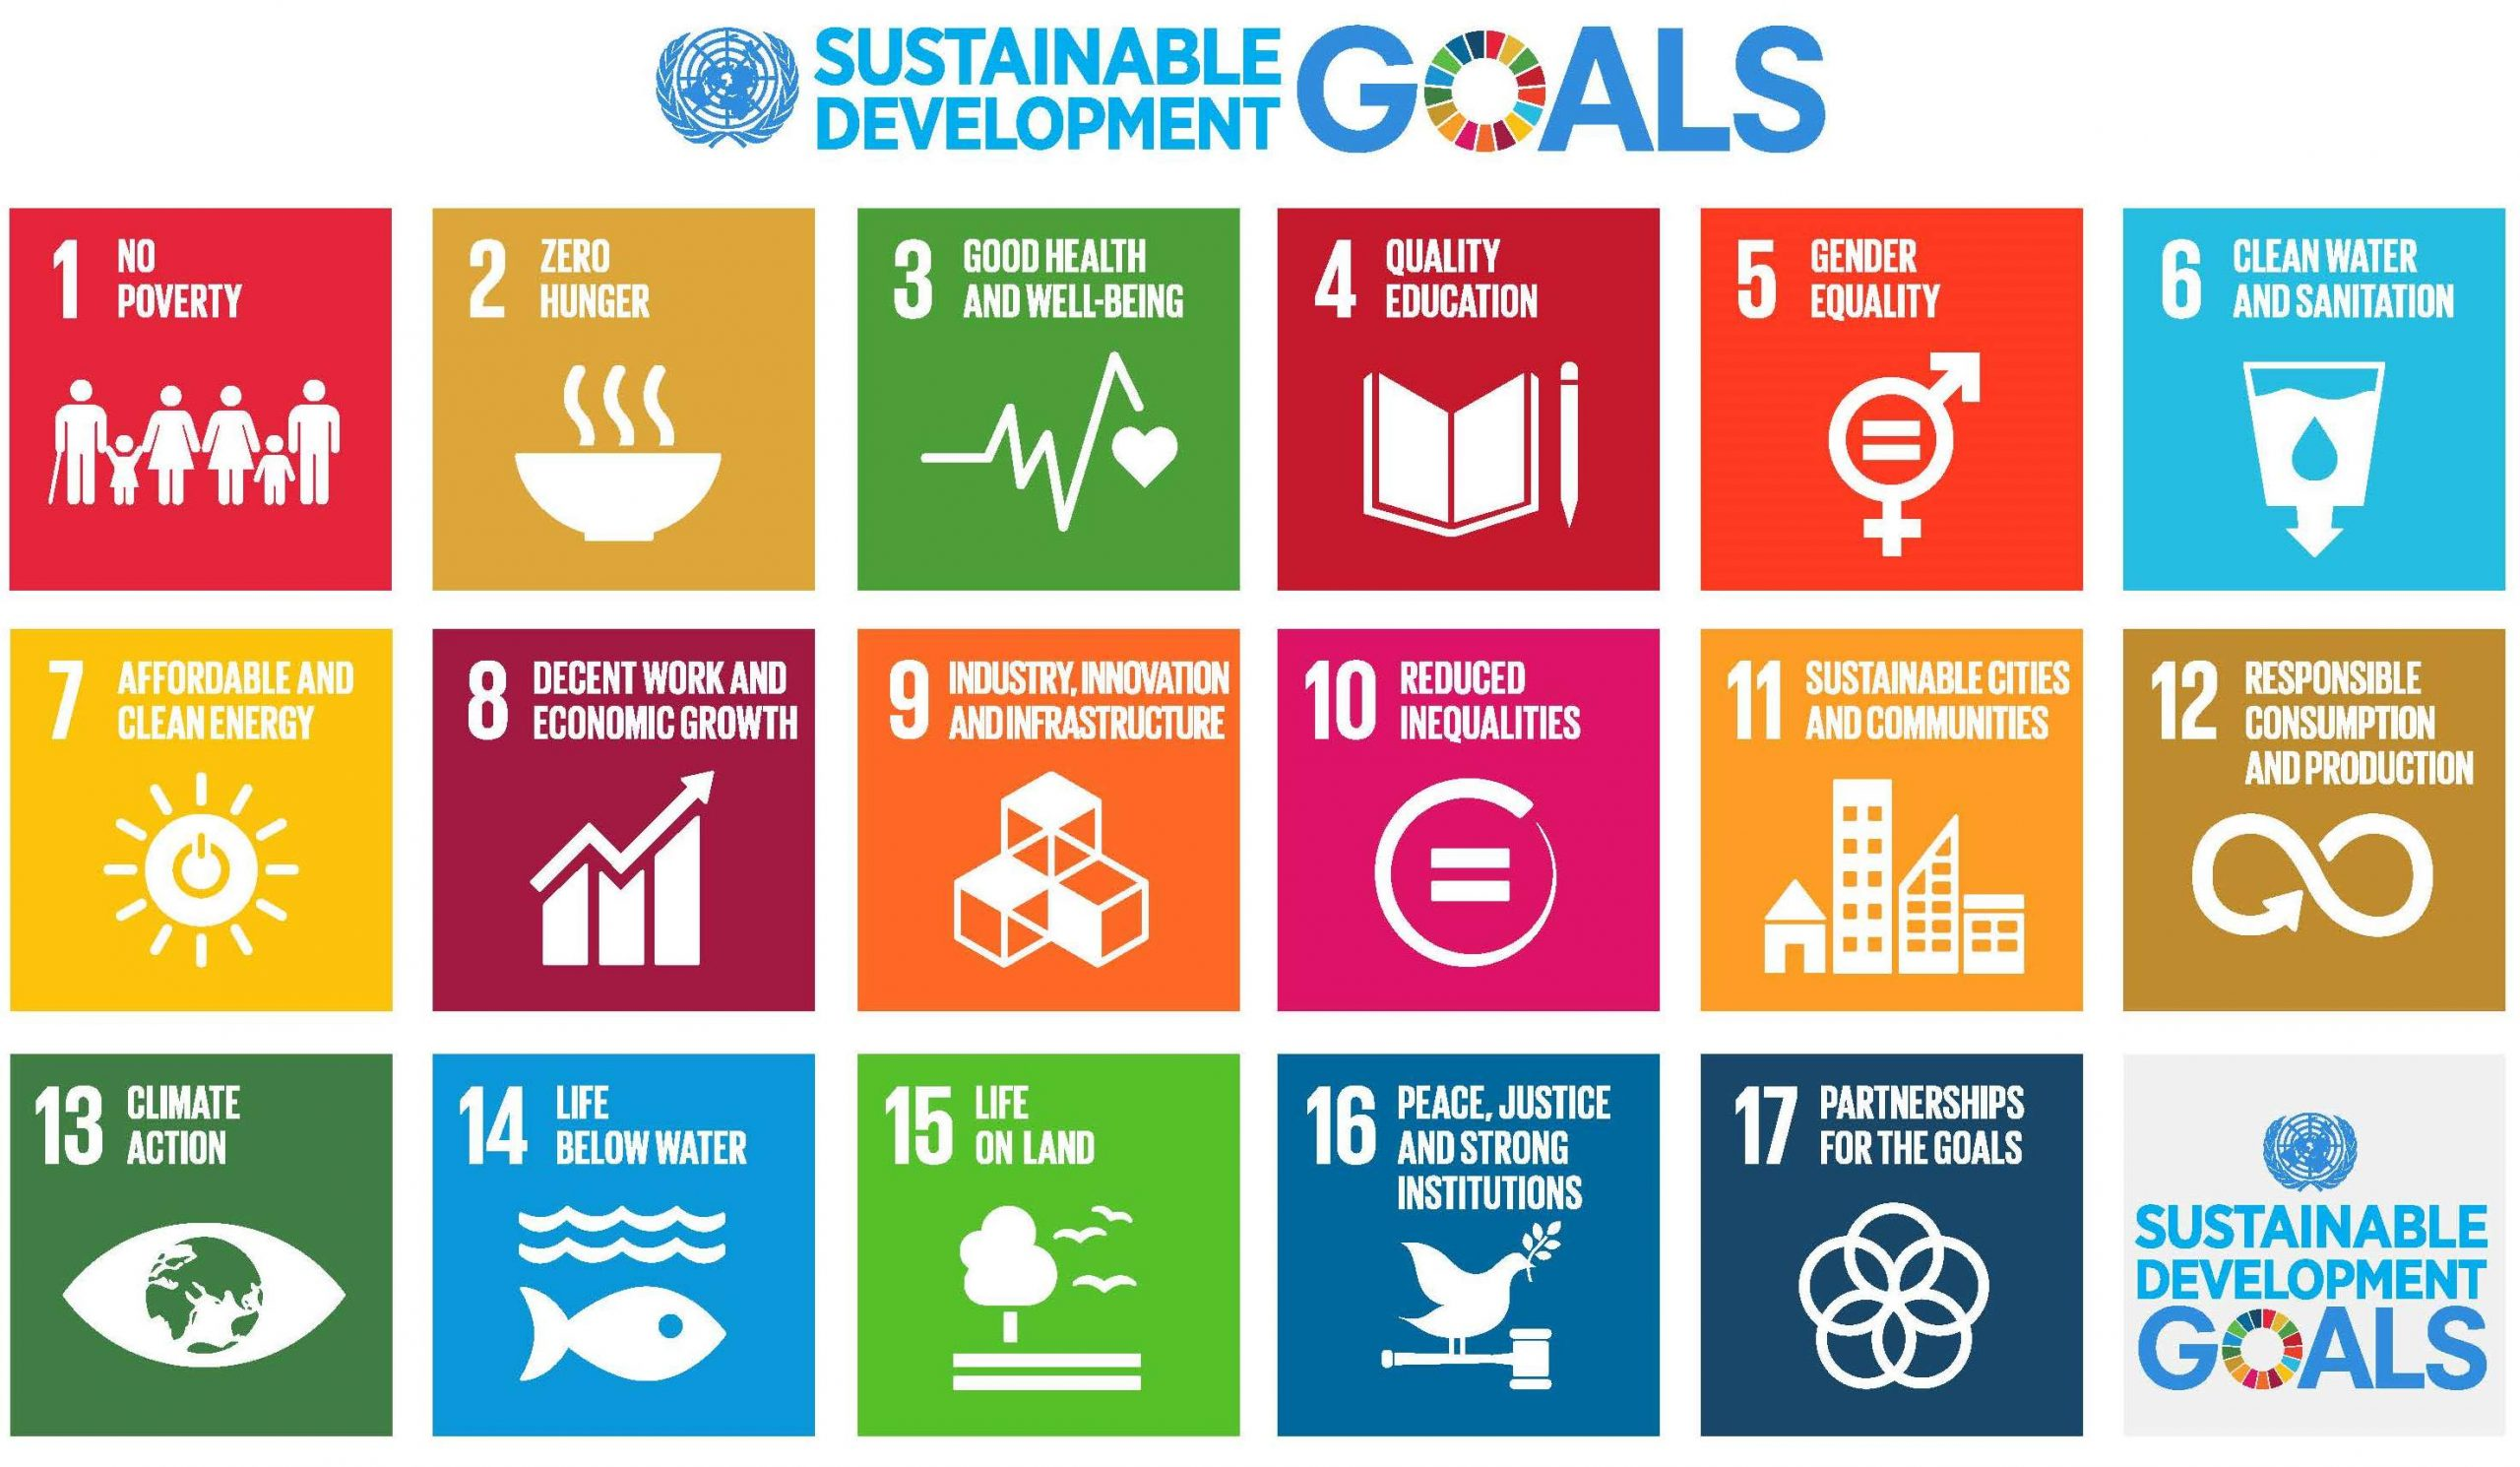 An image of the UN's 17 sustainable development goals. 1. Poverty 2. Zero Hunger 3. Good Health and Well-being 4. Quality Education 5. Gender Equality 6. Clean Water and Sanitation 7. Affordable and Clean Energy 8. Decent Work and Economic Growth 9. Industry Innovation and Infrastructure 10. Reduced Inequalities 11. Sustainable cities and communities 12. Responsible Consumption no Production 13. Climate Action 14. Life Below Water 15. Life On Land 16. Peace Justice and Strong Institutions 17. Partnerships For The Goals